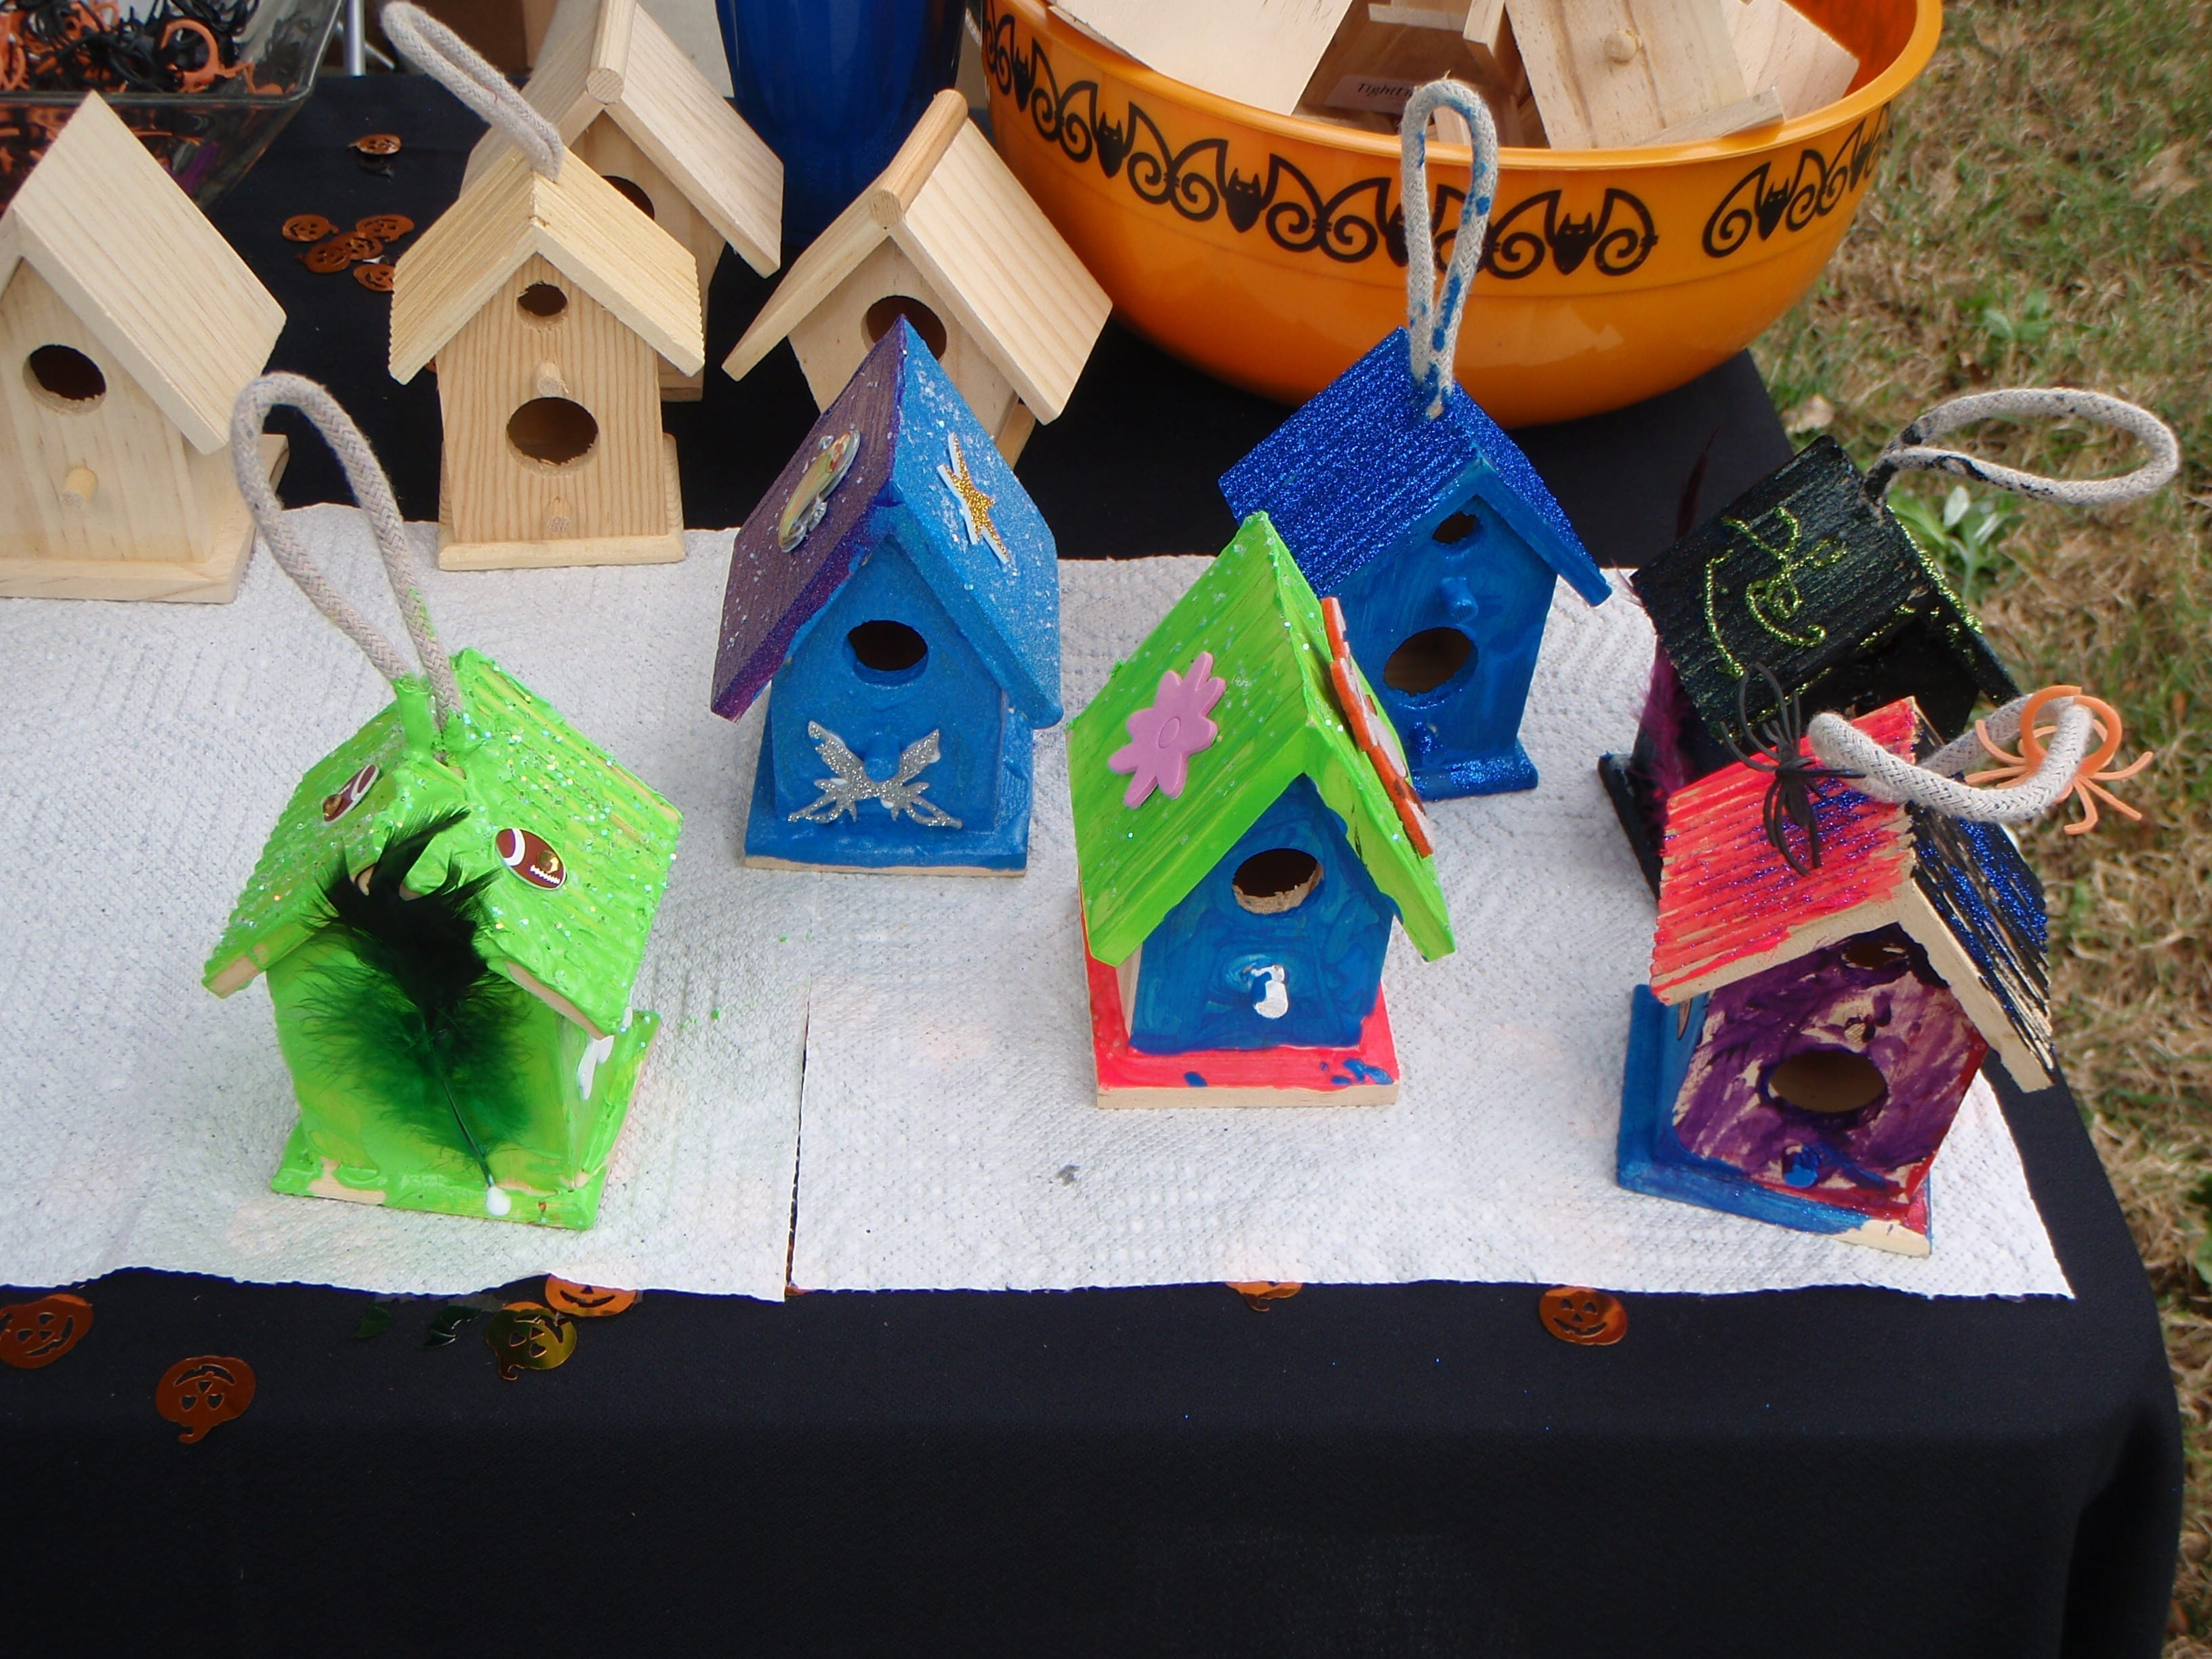 Gorgeous Bird Houses!